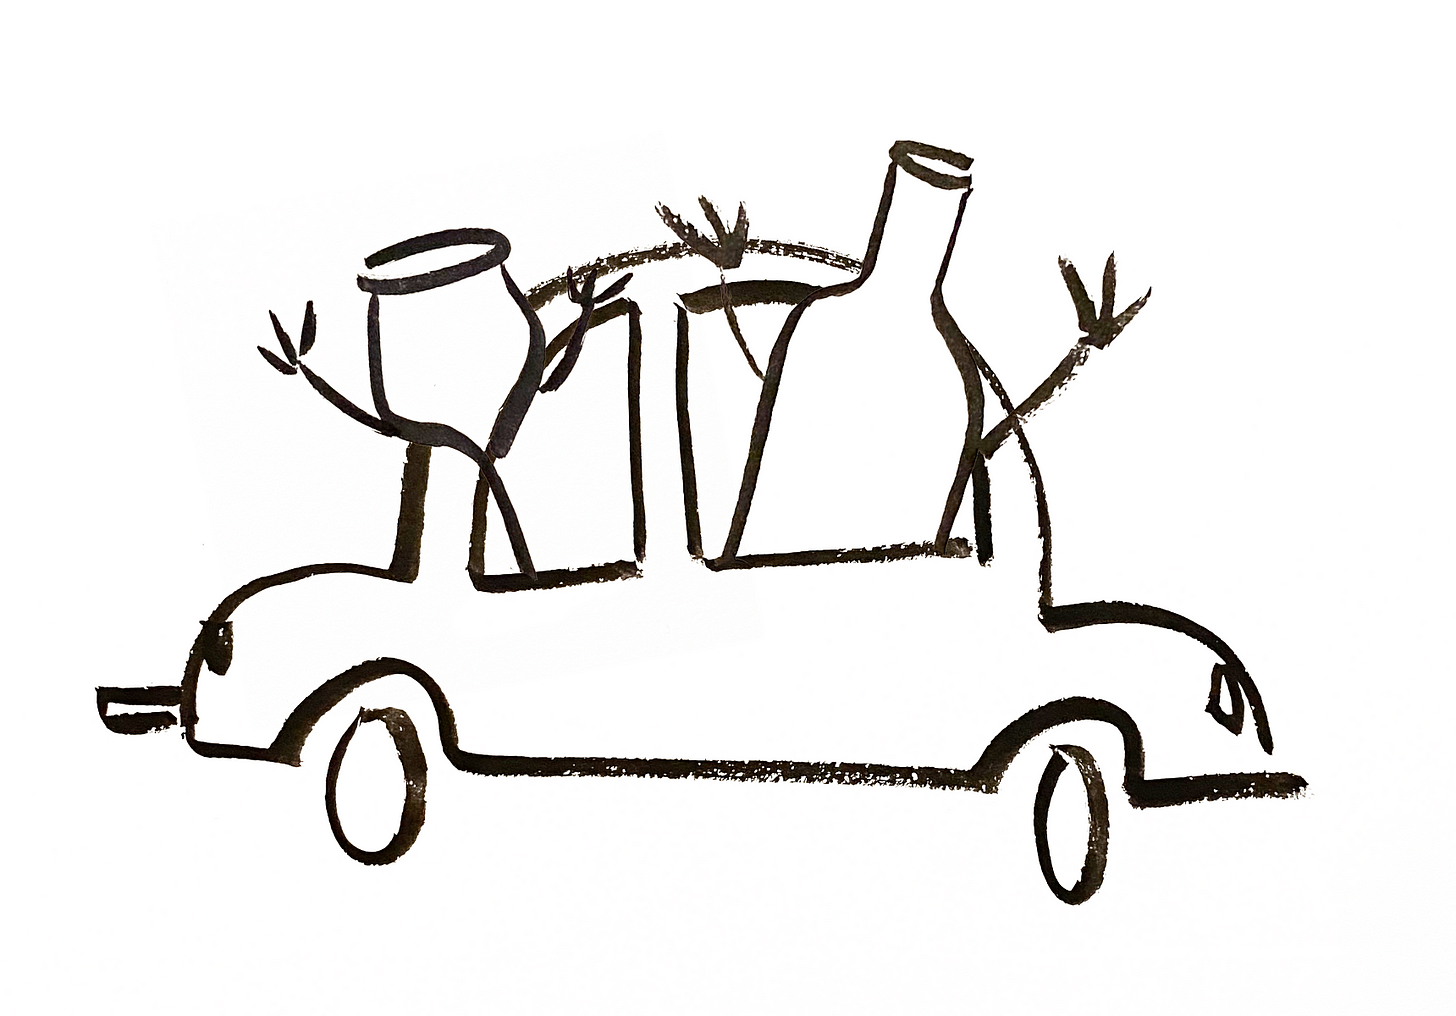 Anthropomorphic wine glasses riding in a car